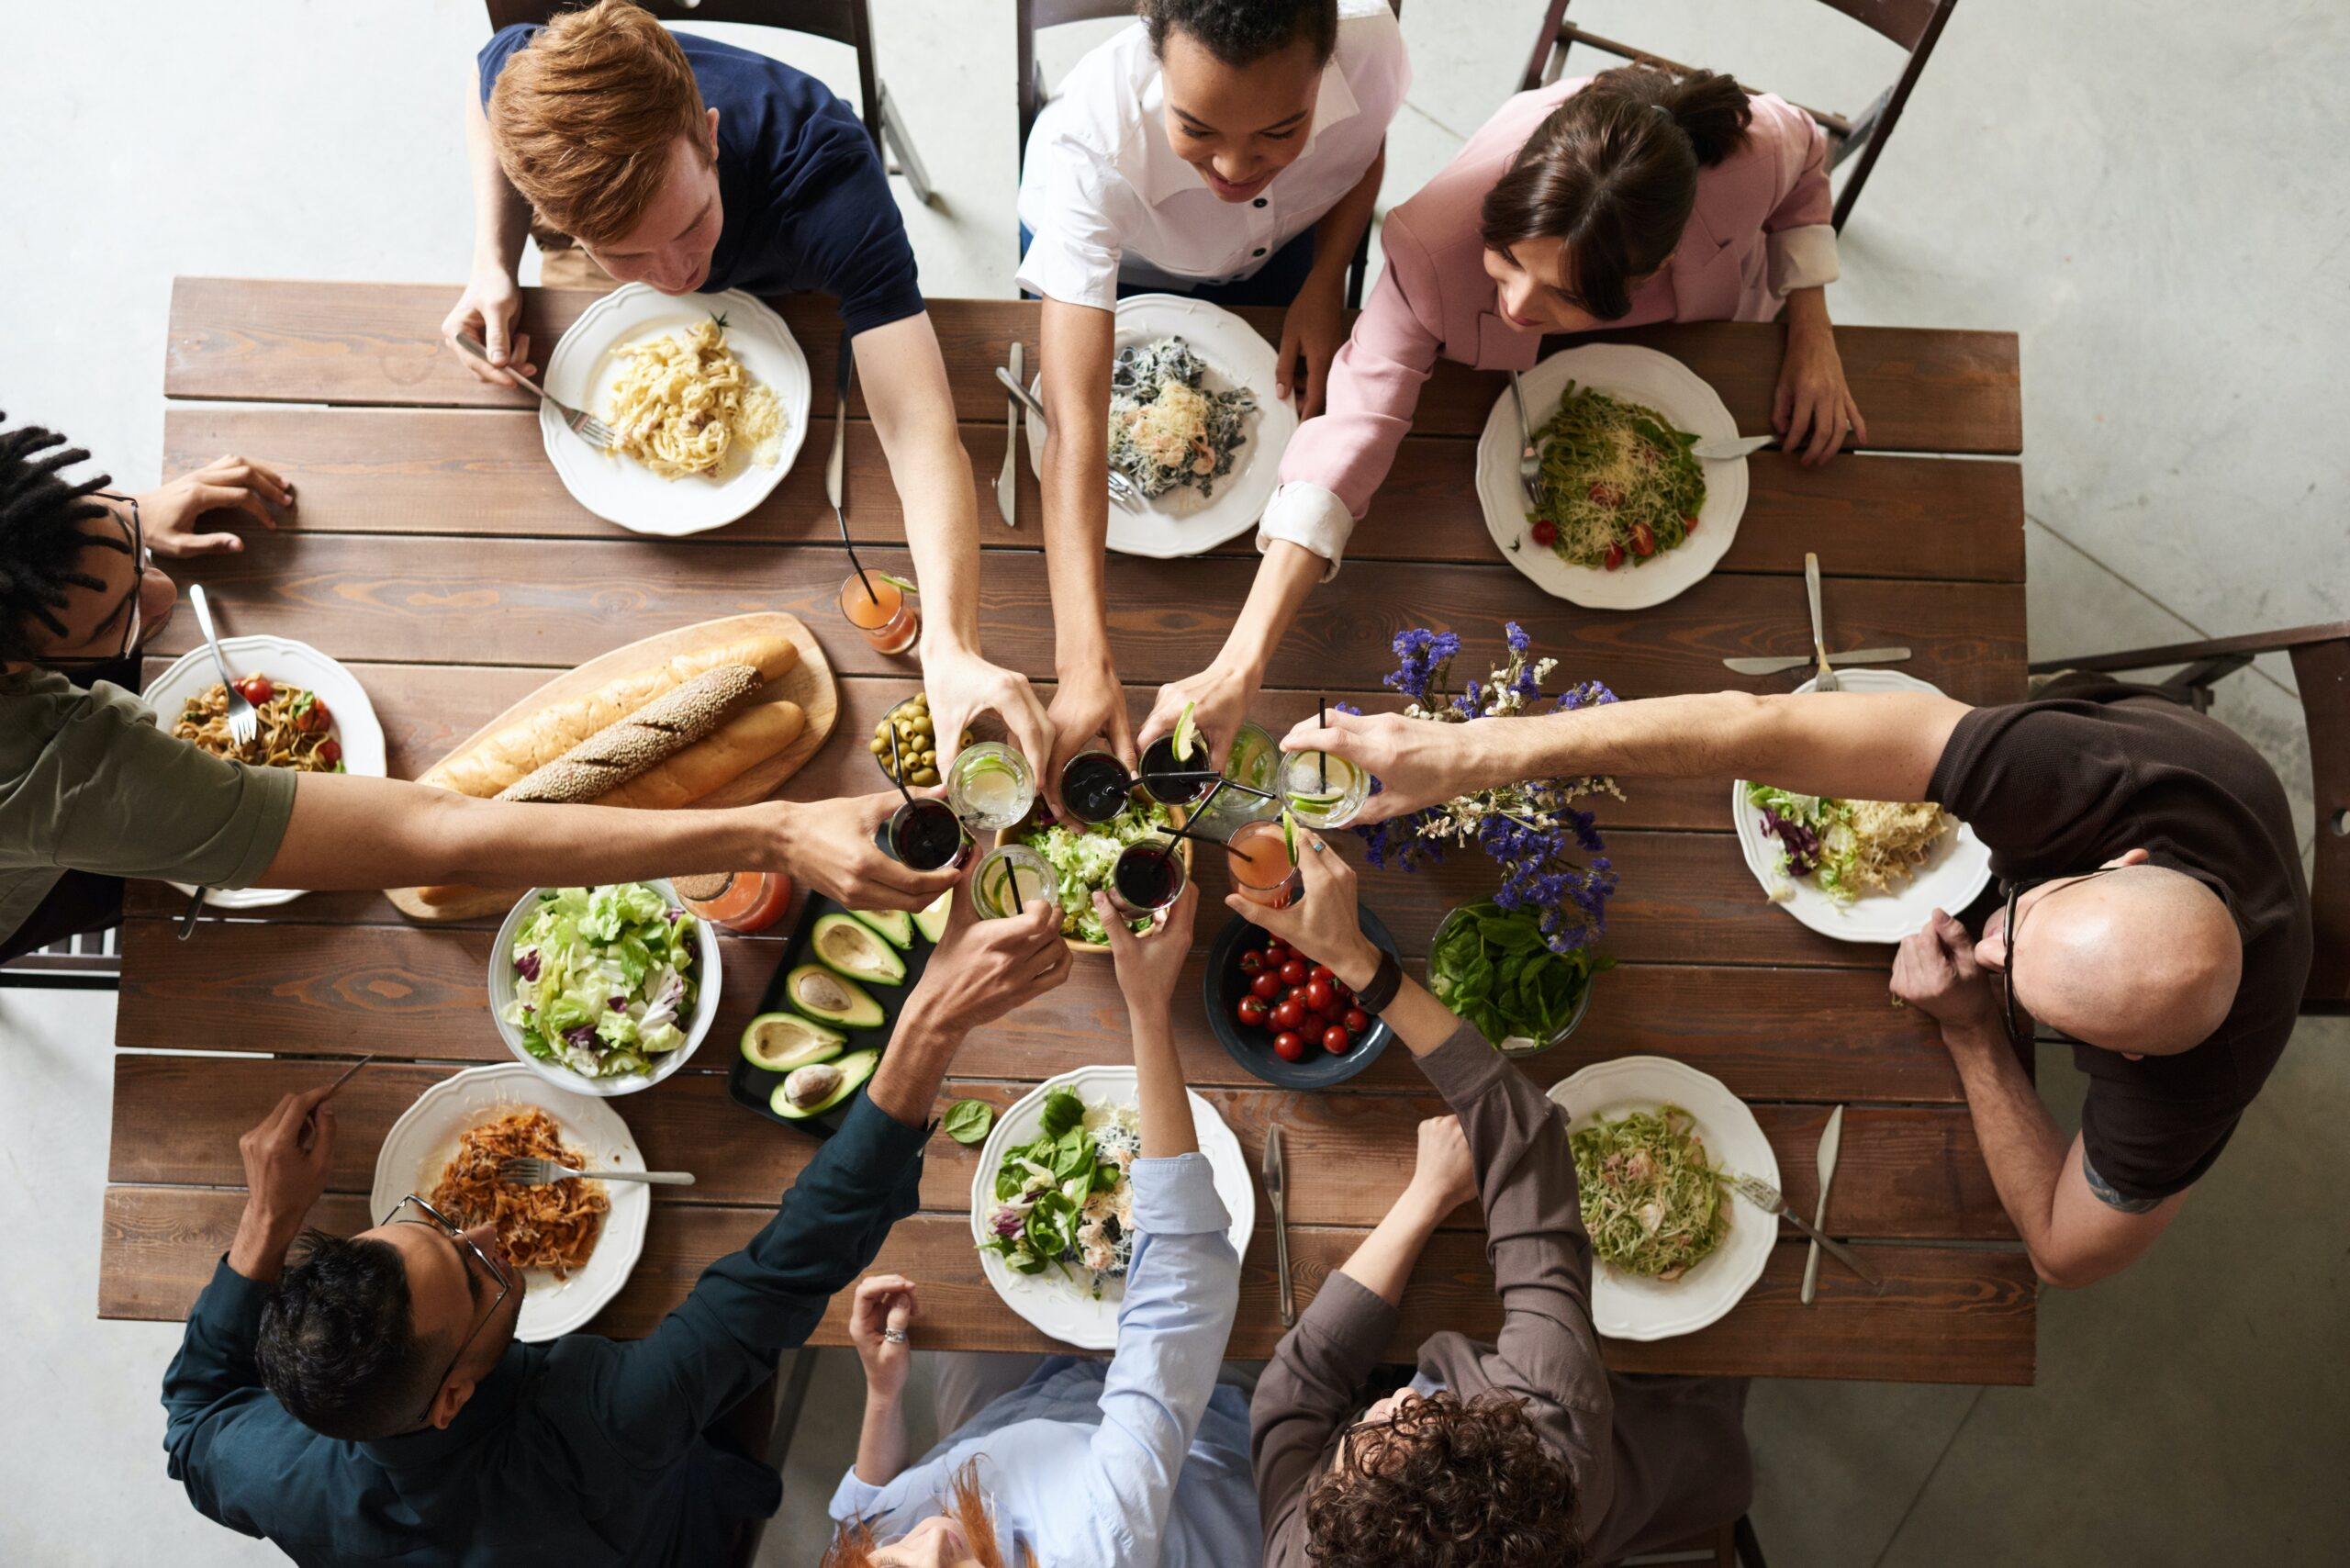 A group of people having a meal together as they raise a toast.